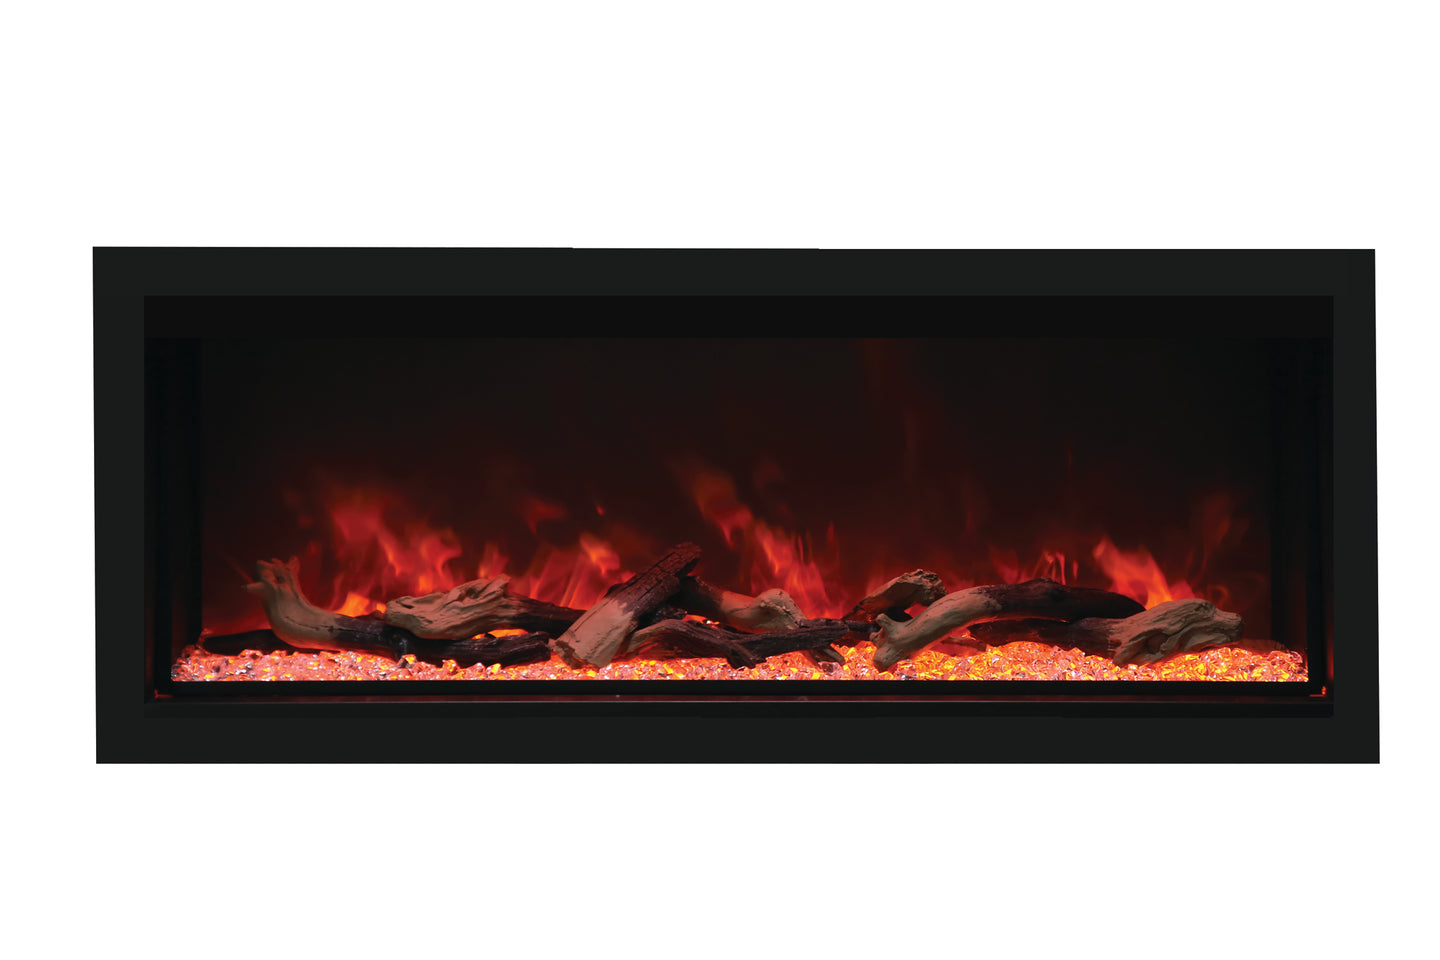 Remi 55″ Wide & 18″ High – Indoor or Outdoor, Built-in only, Electric Fireplace with black steel surround - Crackle Fireplaces